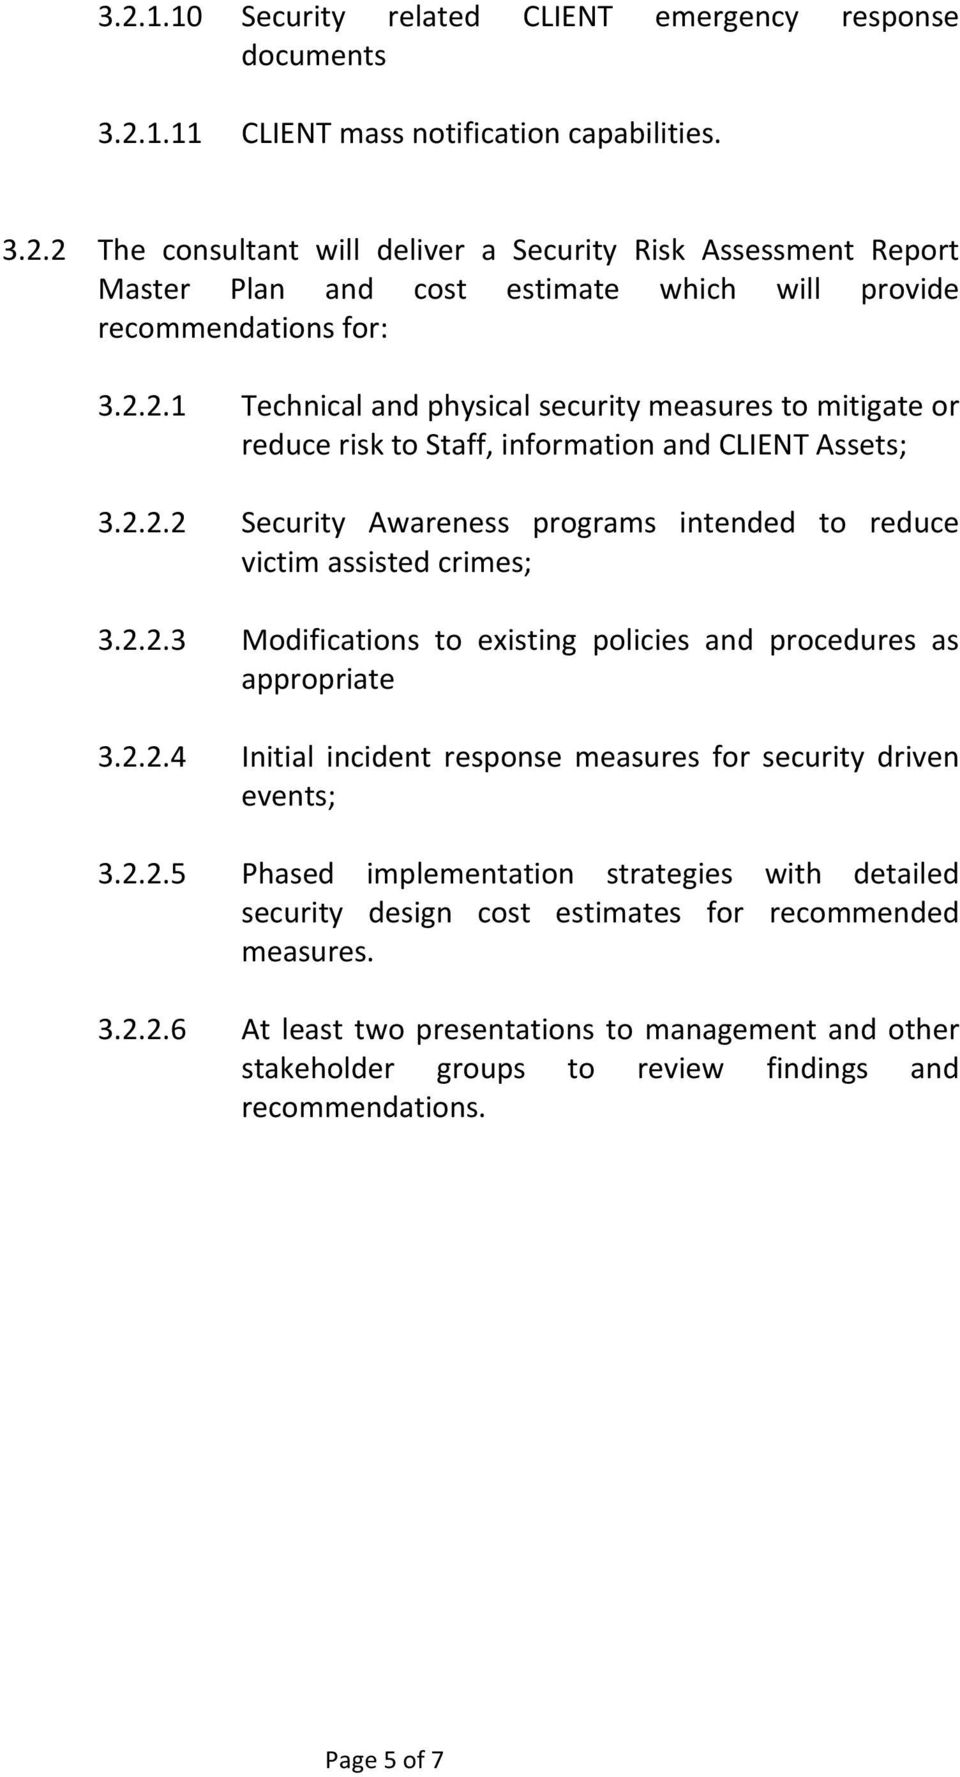 2.2.4 Initial incident response measures for security driven events; 3.2.2.5 Phased implementation strategies with detailed security design cost estimates for recommended measures. 3.2.2.6 At least two presentations to management and other stakeholder groups to review findings and recommendations.